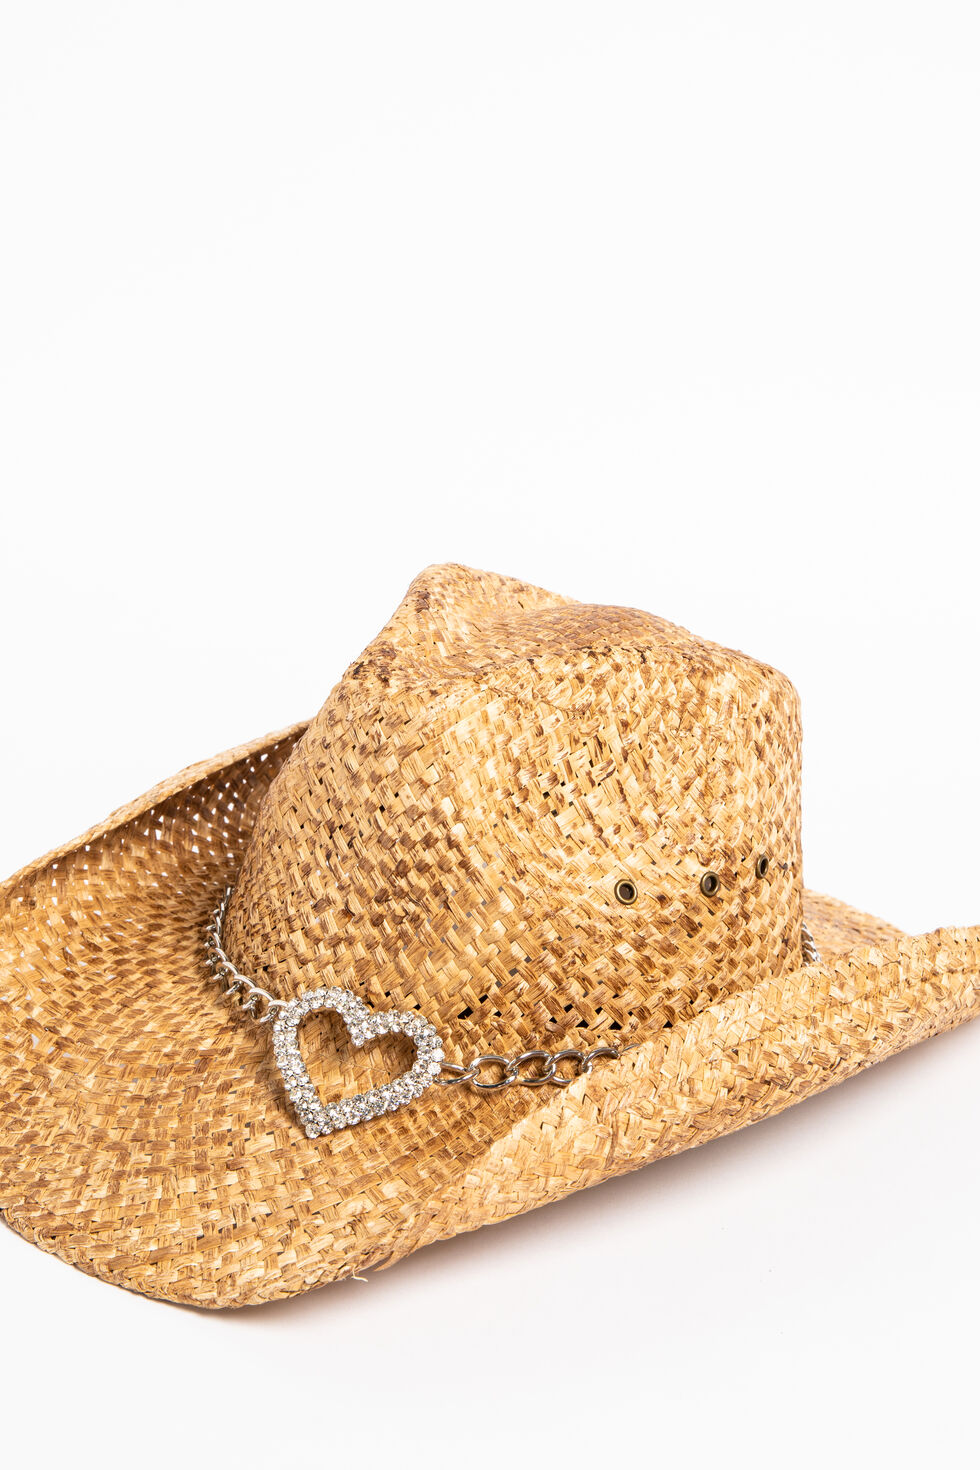 Shyanne Women's Heart Attack Cowboy Hat, Brown, hi-res